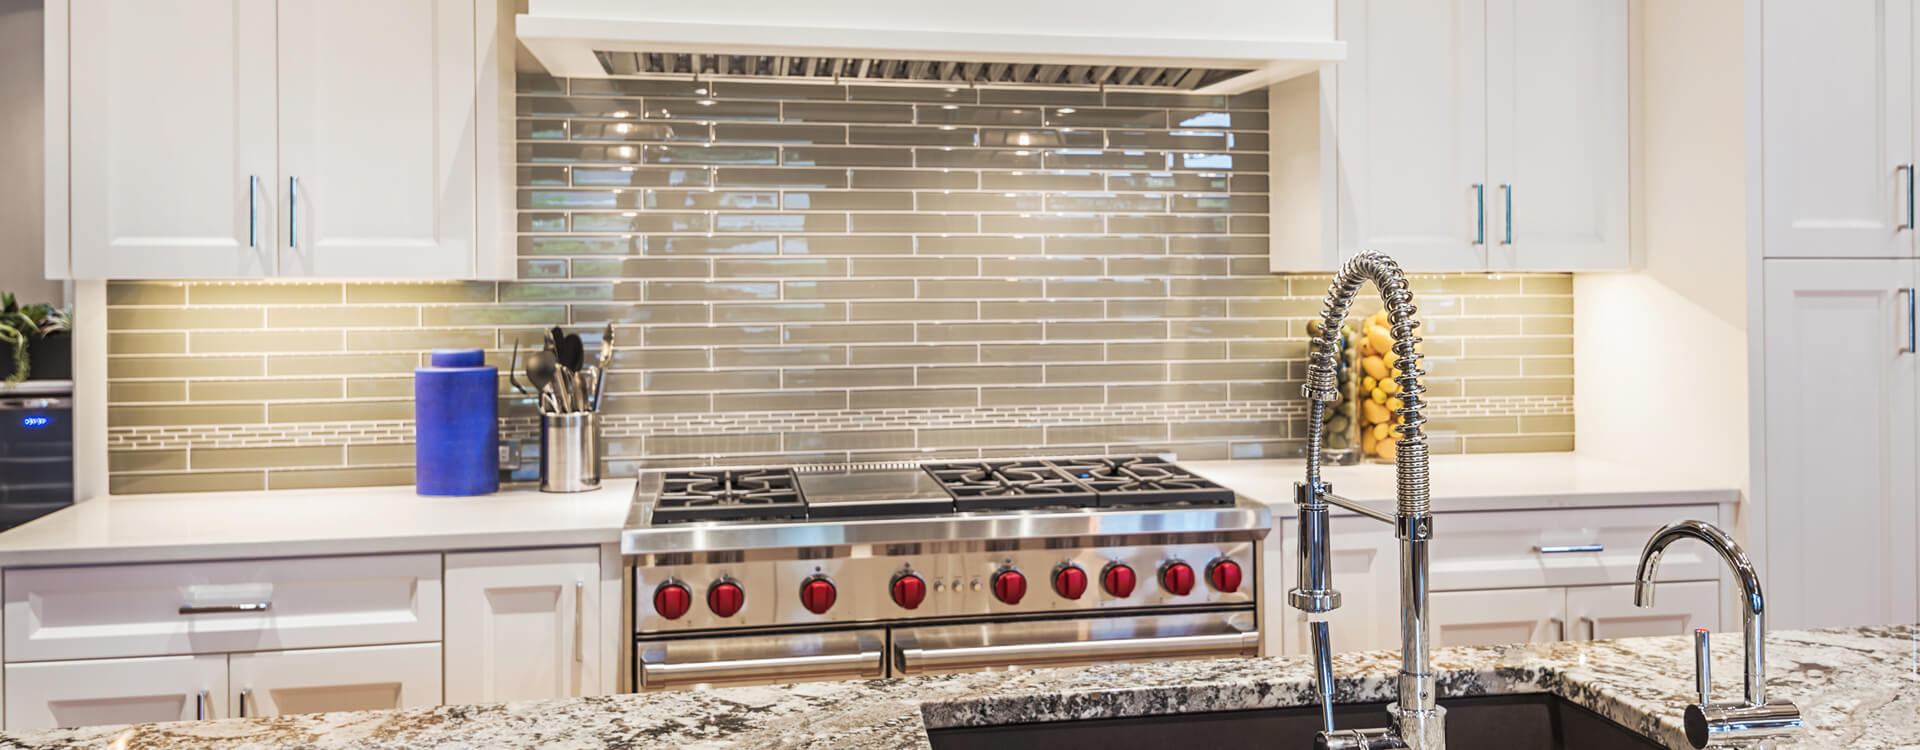 Marvelous Backsplash Ideas To Add More Spice To Your Kitchen Gilsa Usa Home Interior And Landscaping Analalmasignezvosmurscom